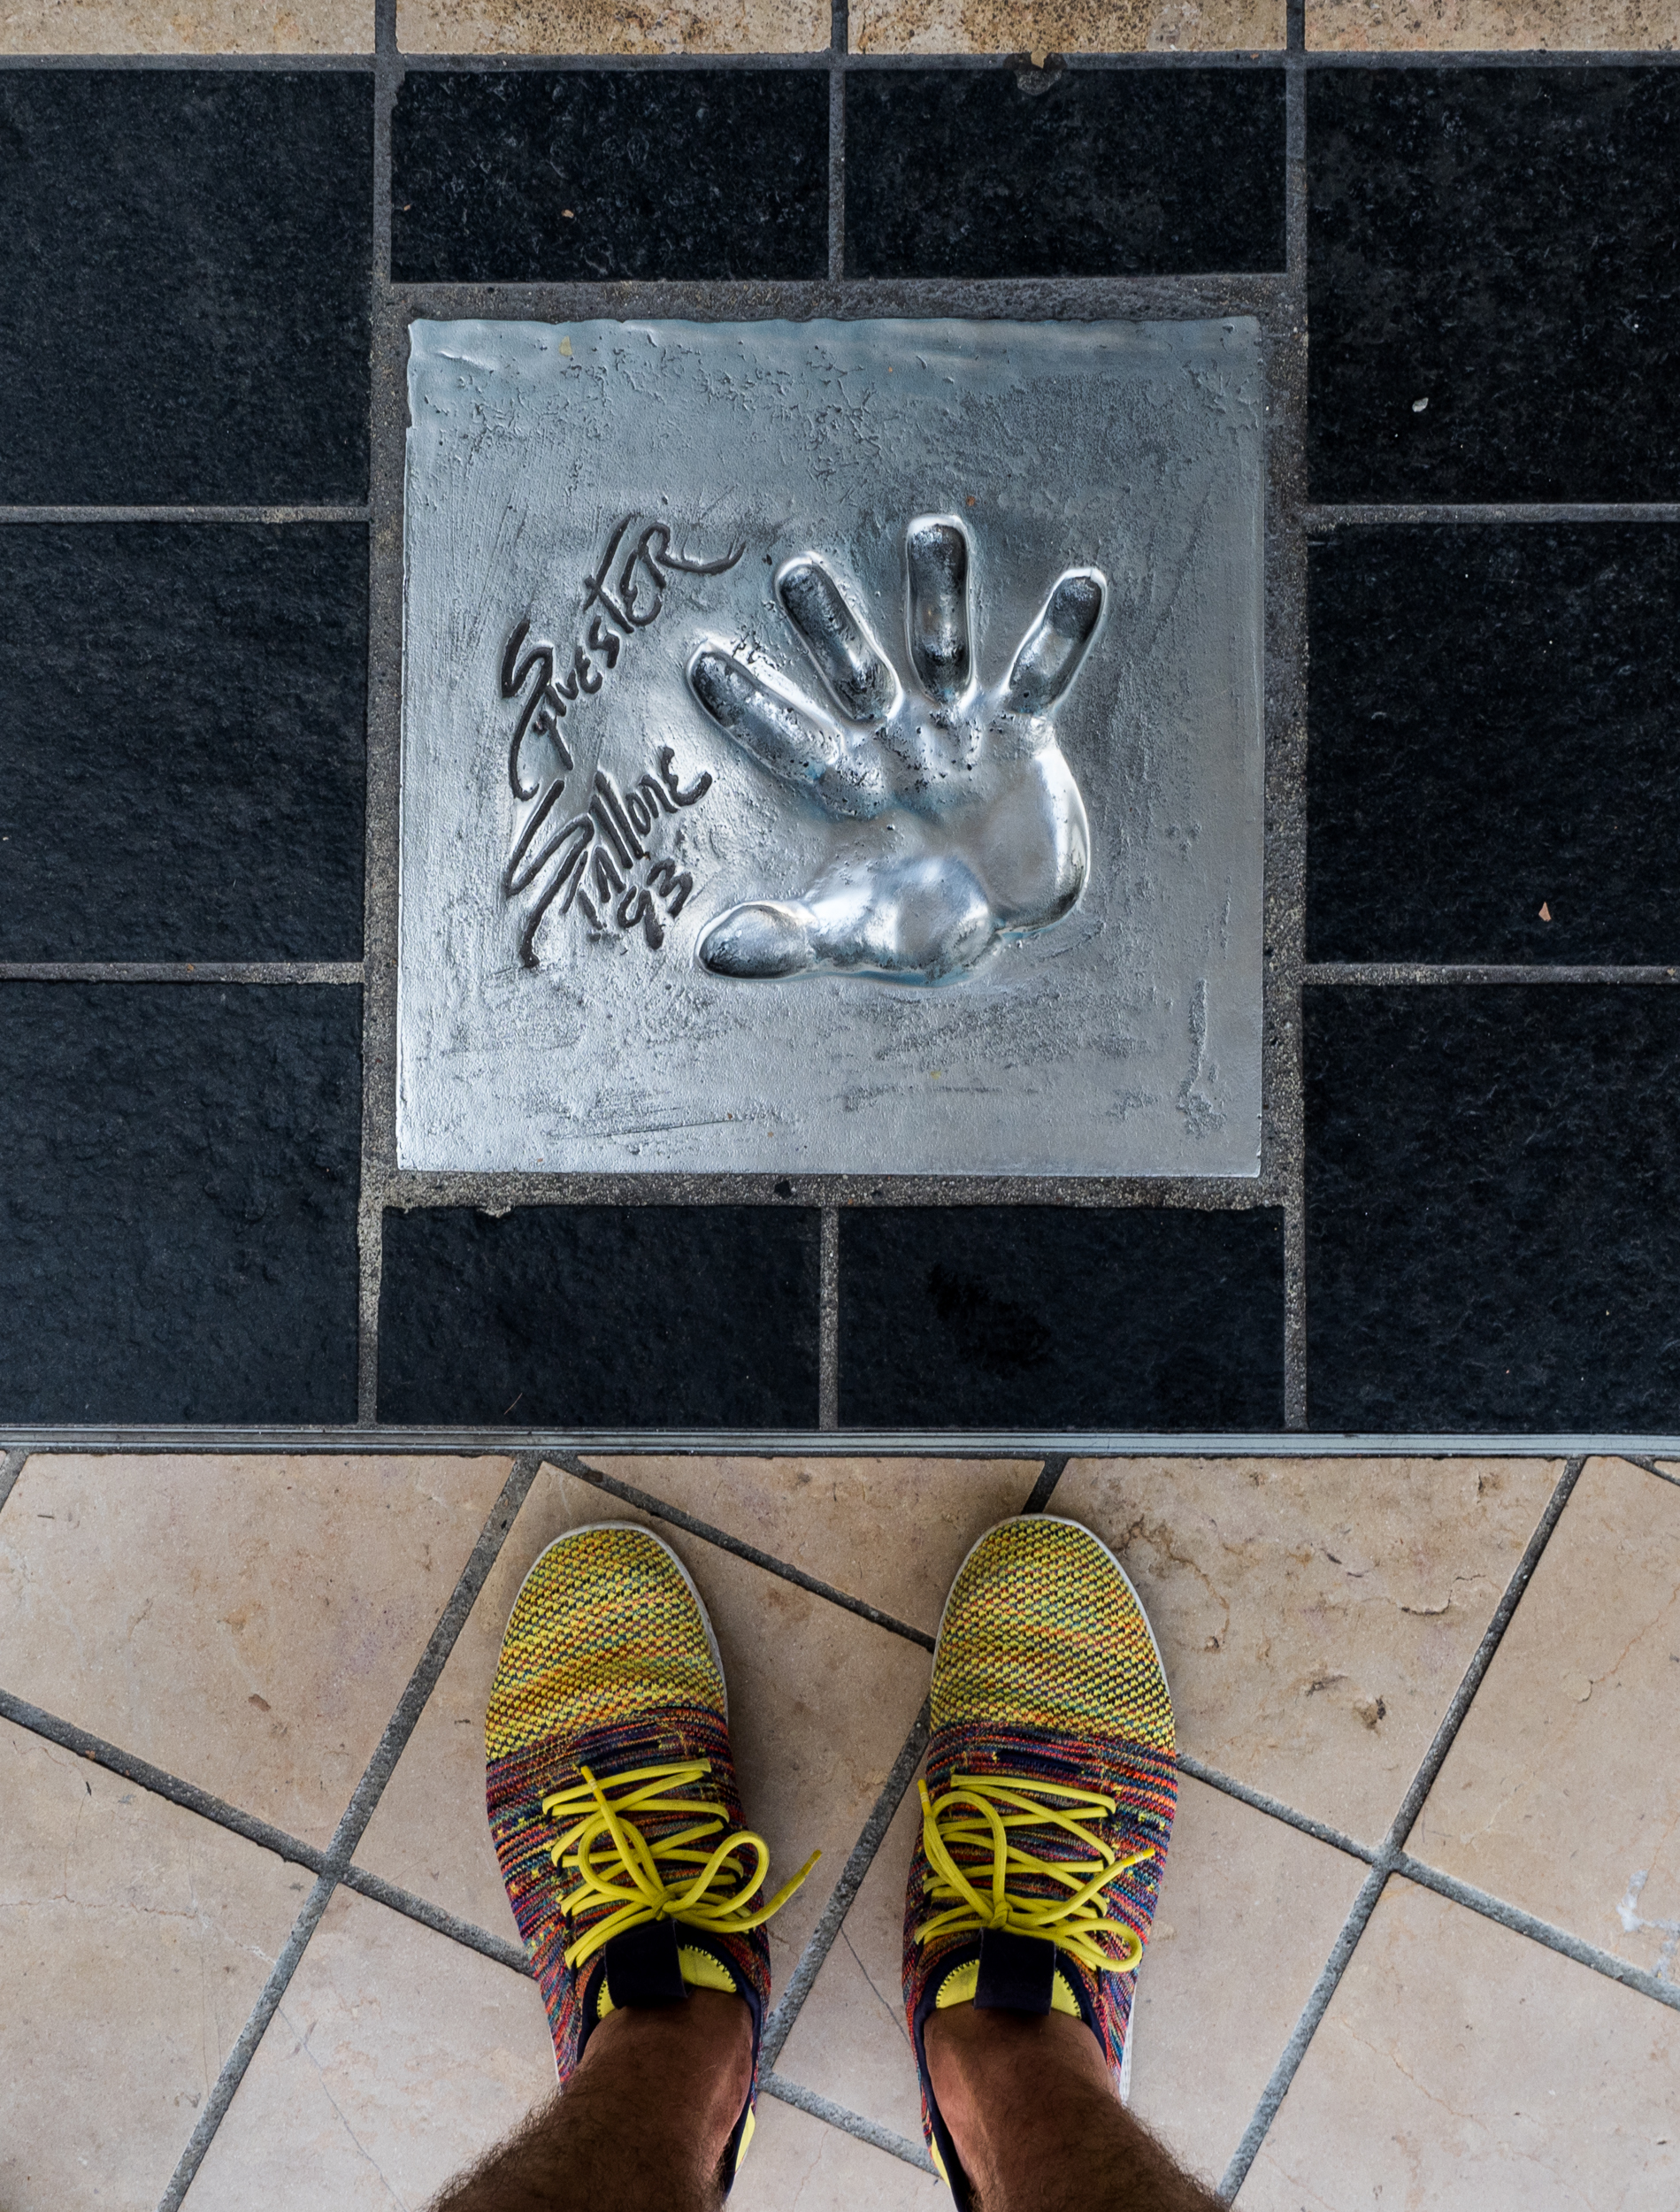 Cannes Hand Prints